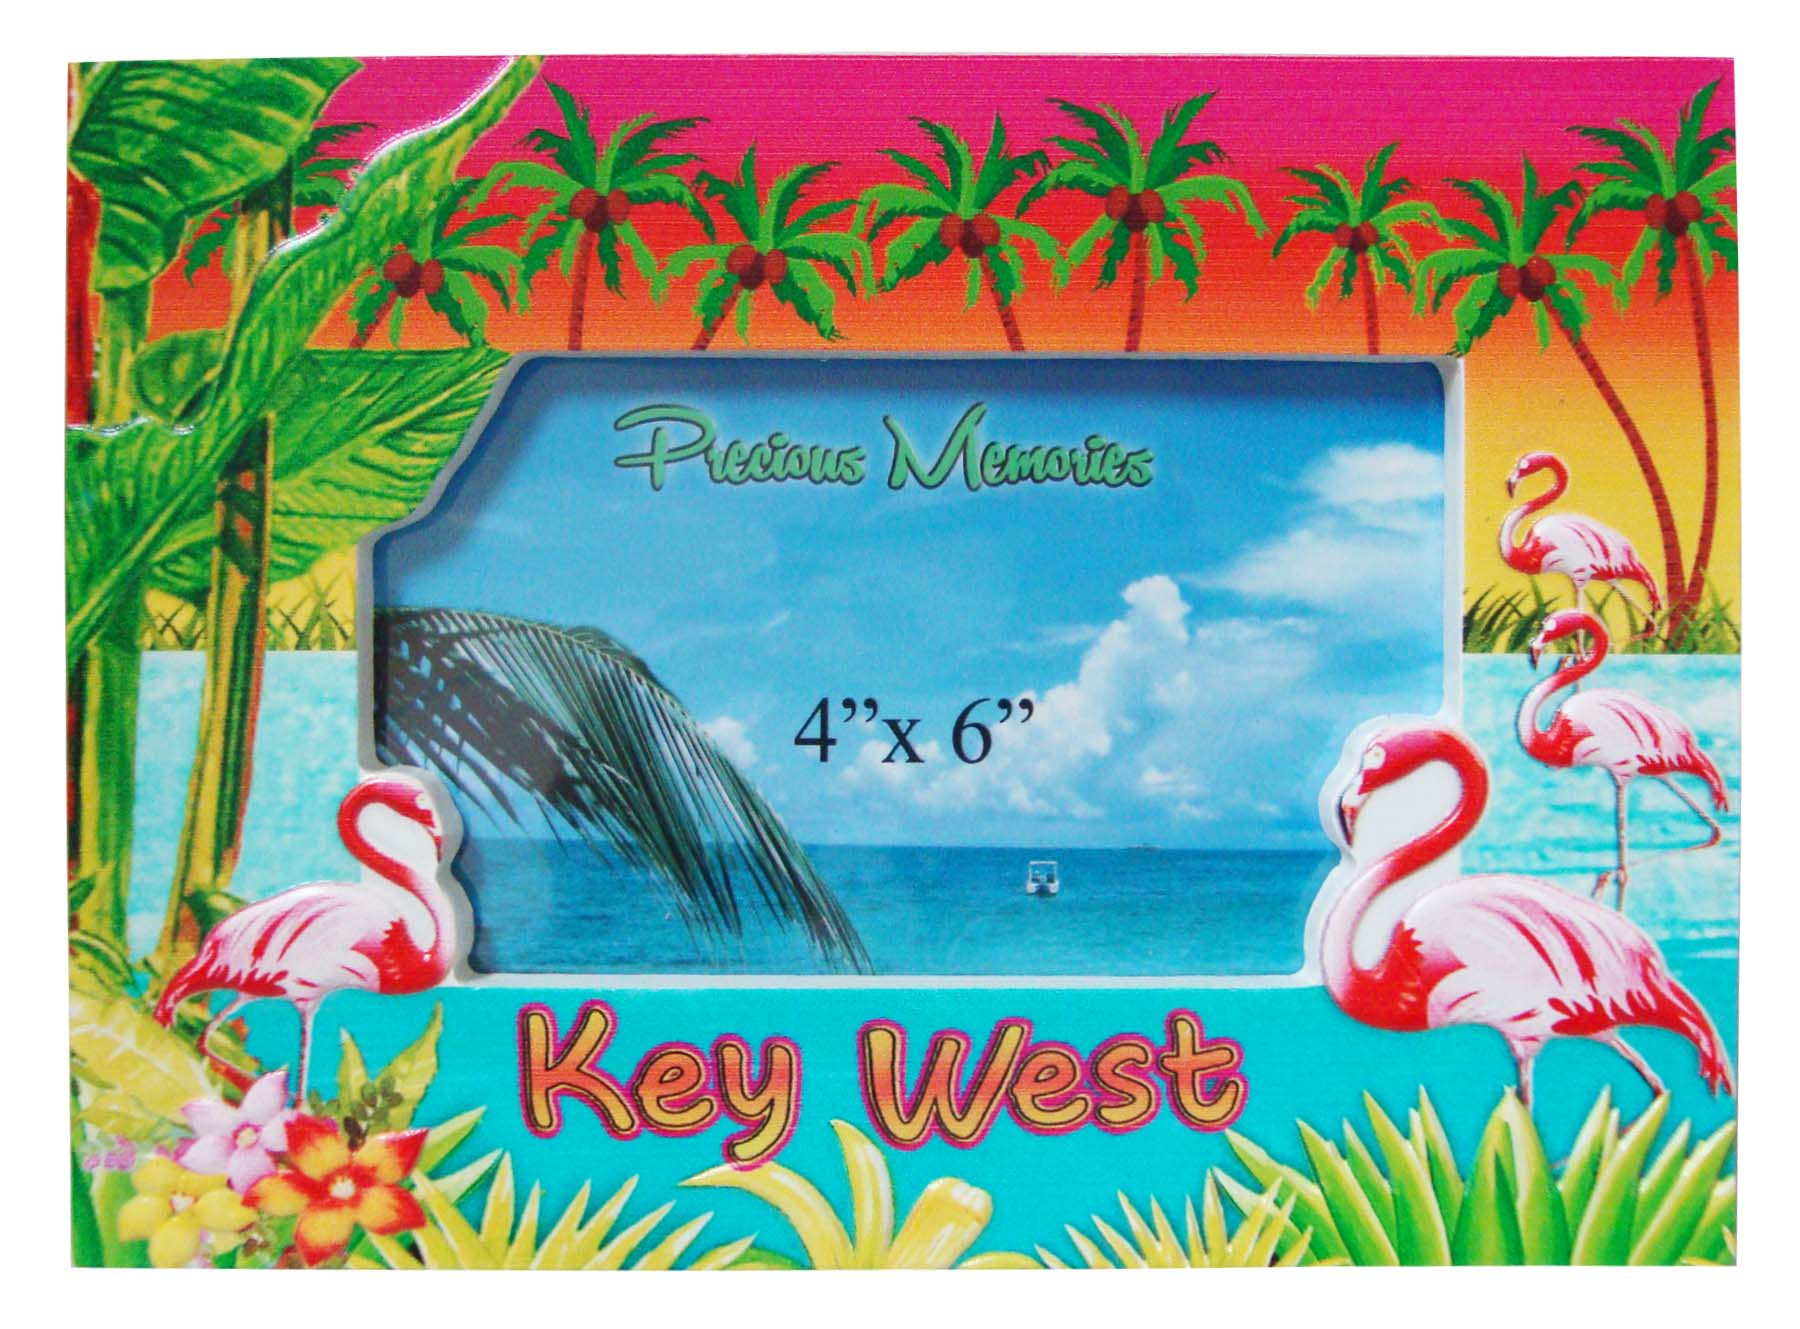 FRAME POLY-DECAL FLAMINGO/PT - UOM: PC - Minimum Order:4